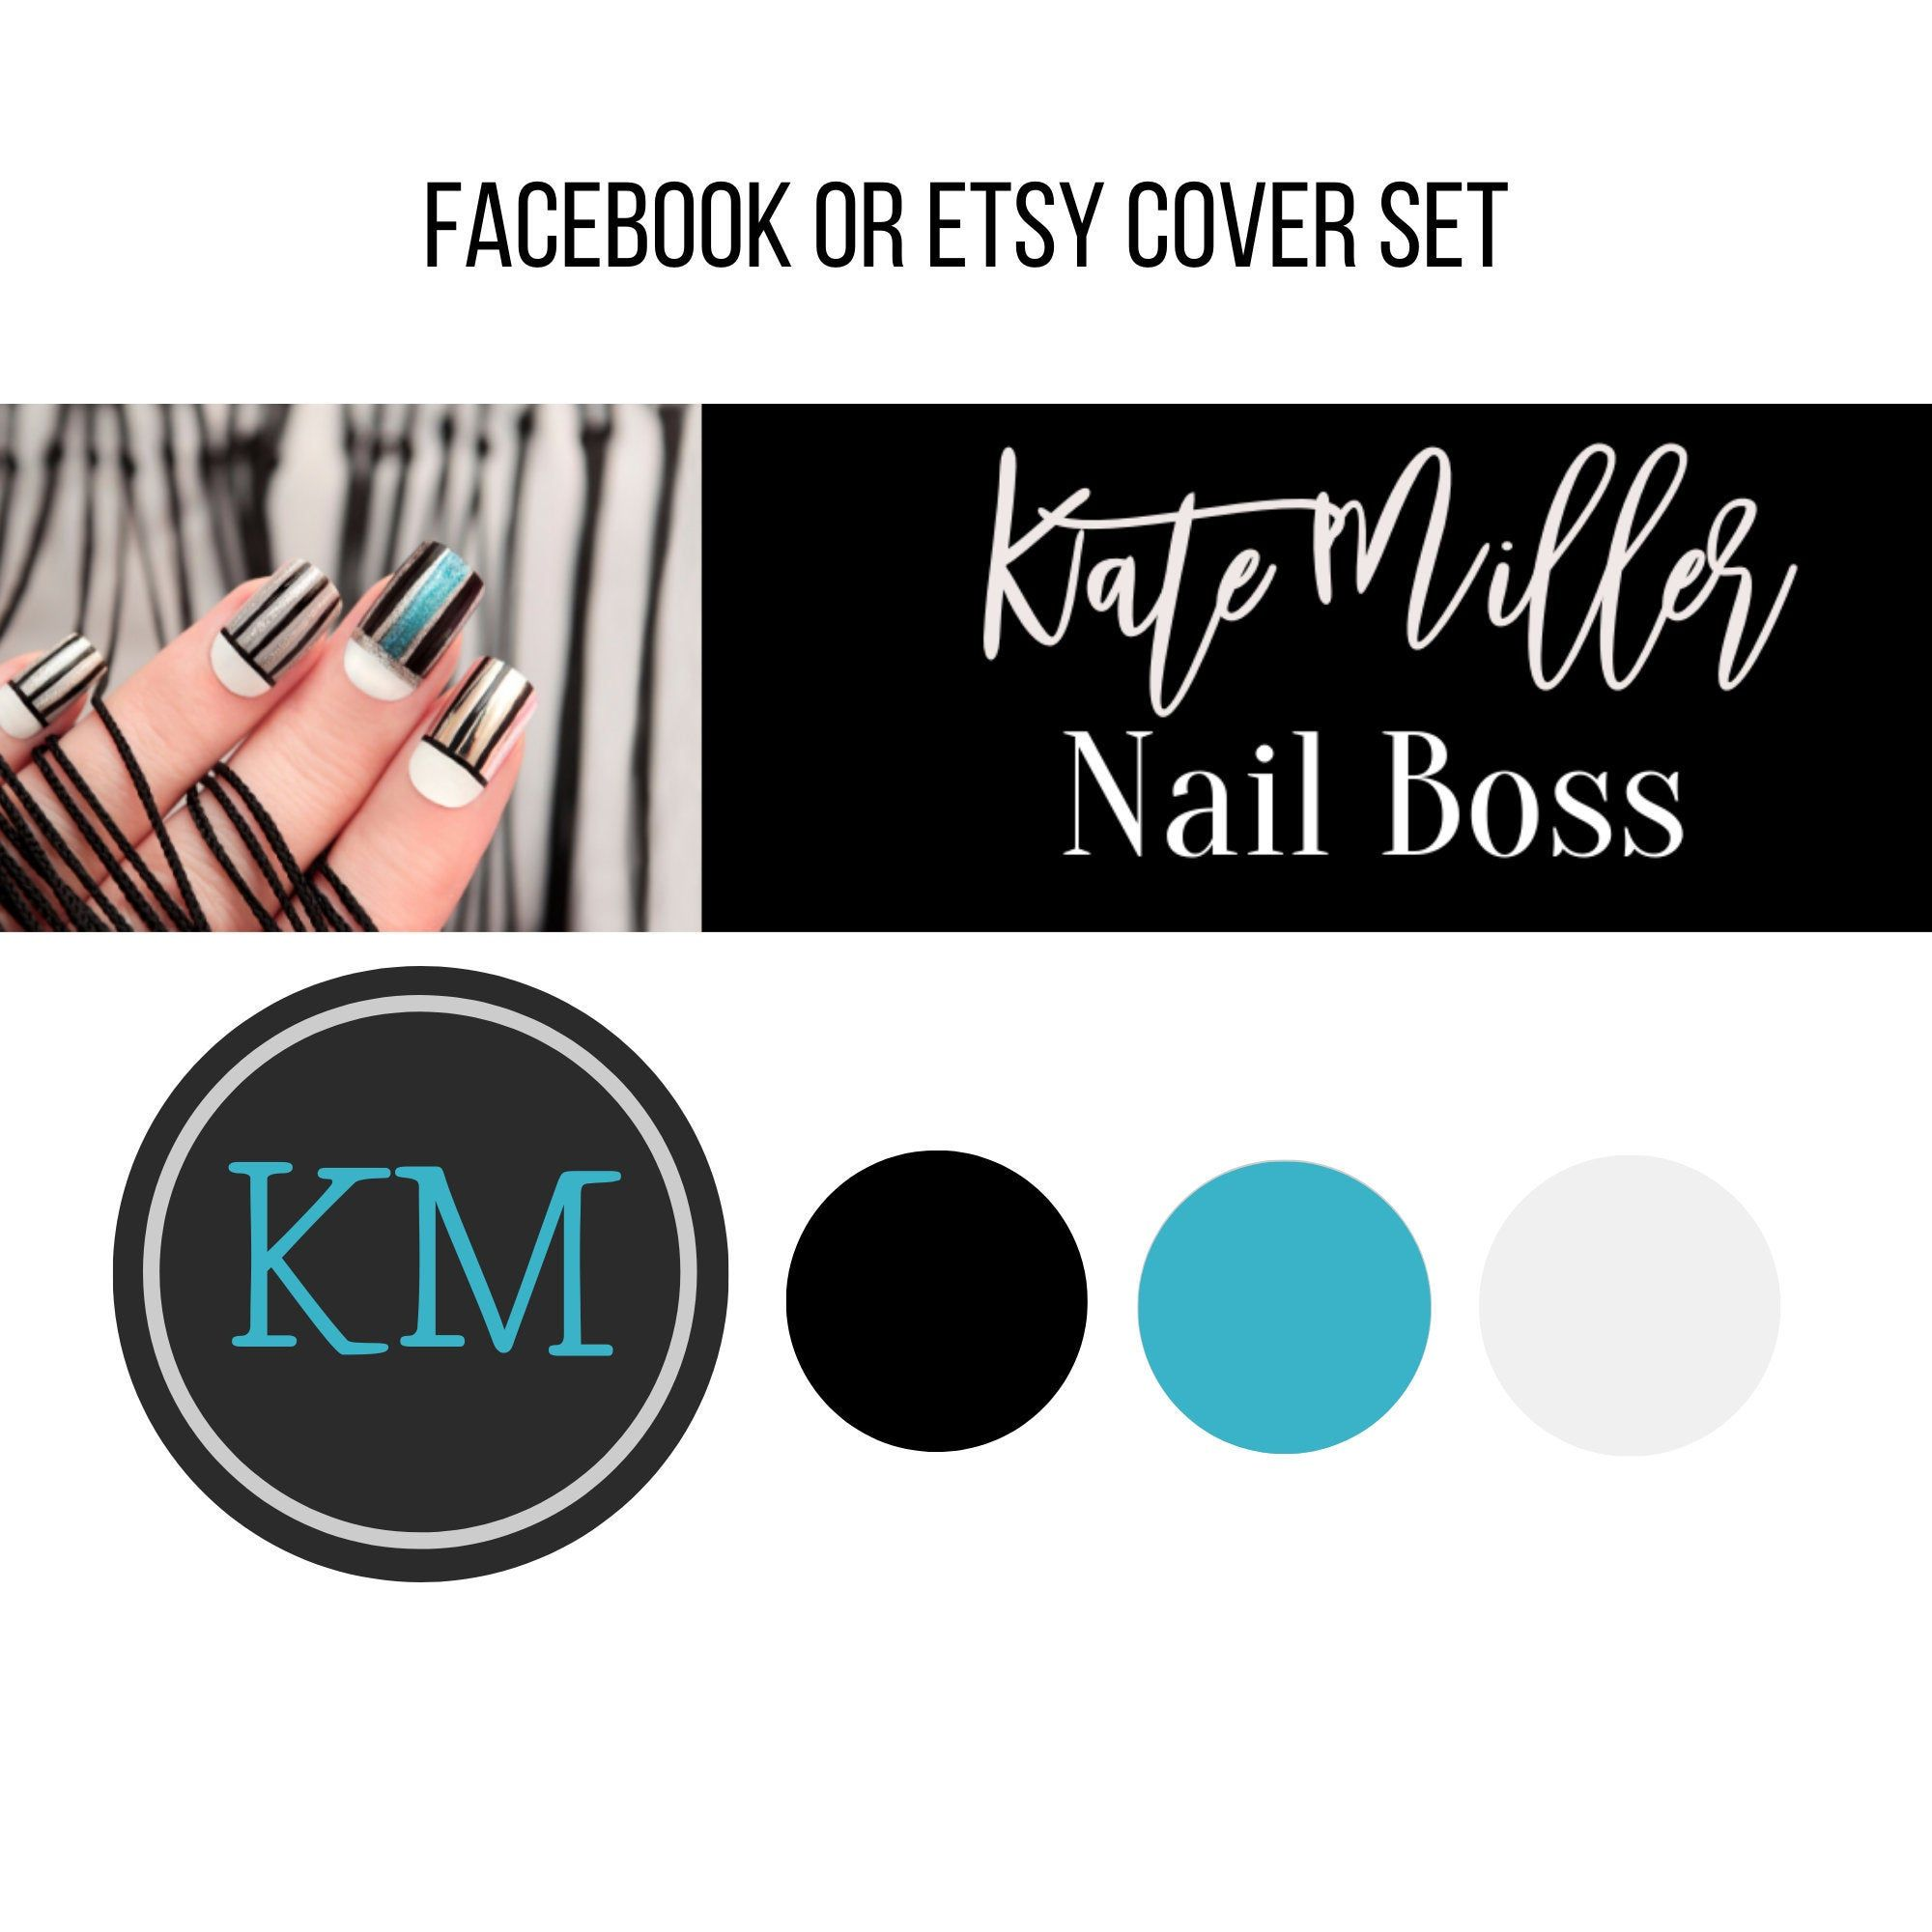 Nail Boss Etsy Banner Shop Icon Set Nails Consultant Facebook Cover And Profile Picture Set Etsy Shop Banner For N In 2020 Etsy Shop Banner Etsy Branding Etsy Banner